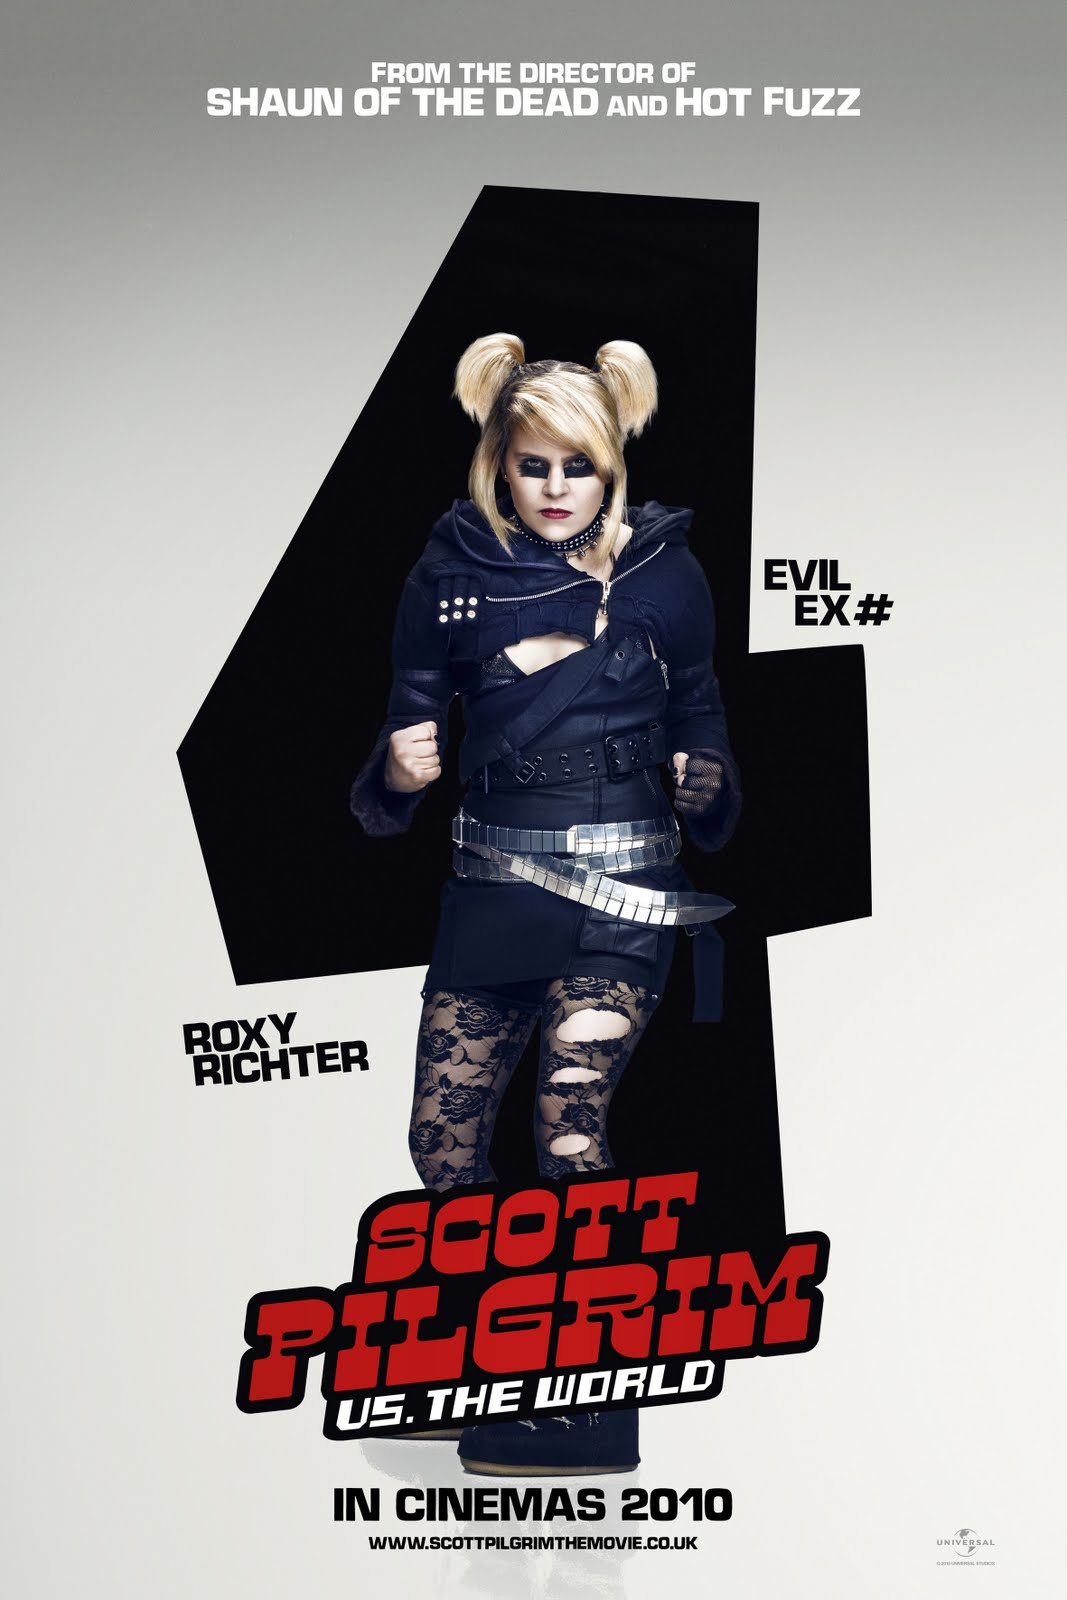 scott pilgrim vs the world essay Scott pilgrim vs the world essay - scott pilgrim vs the world tells the classic story of boy meets girl, boy falls in love with girl but first must overcome .